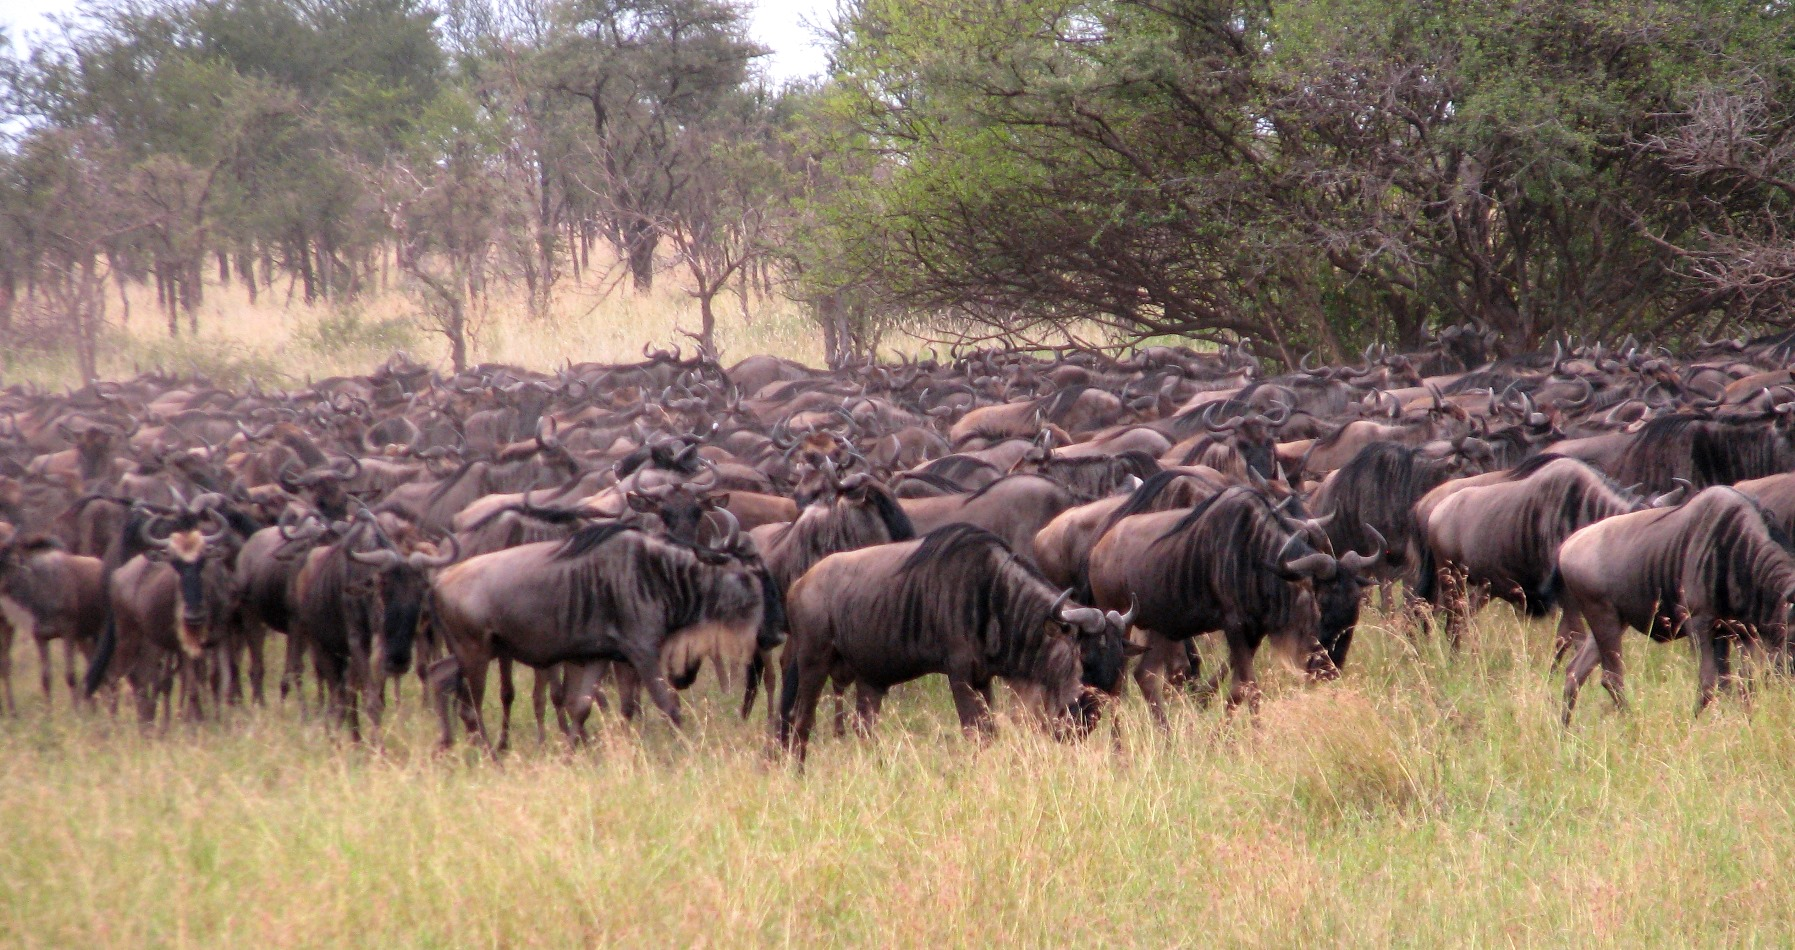 A few of the participants in the annual Serengeti-Mara wildebeest migration.